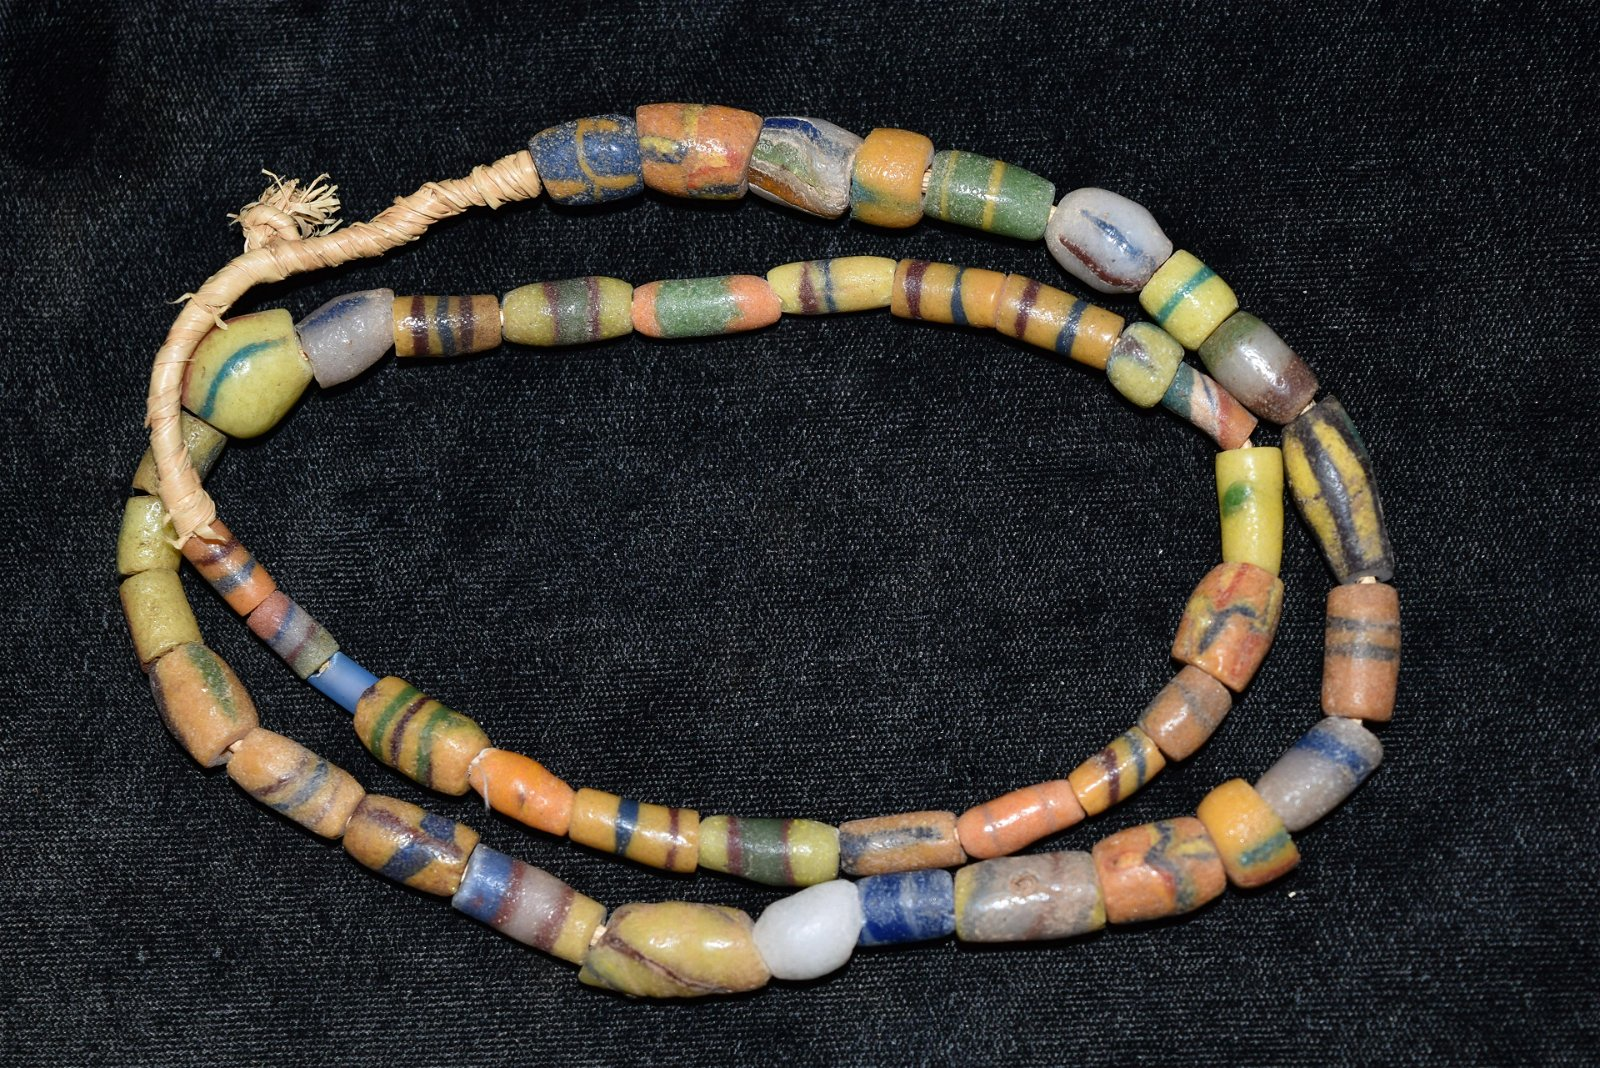 Strand of 1800s African Sandcast Trade Beads, Gem Grade